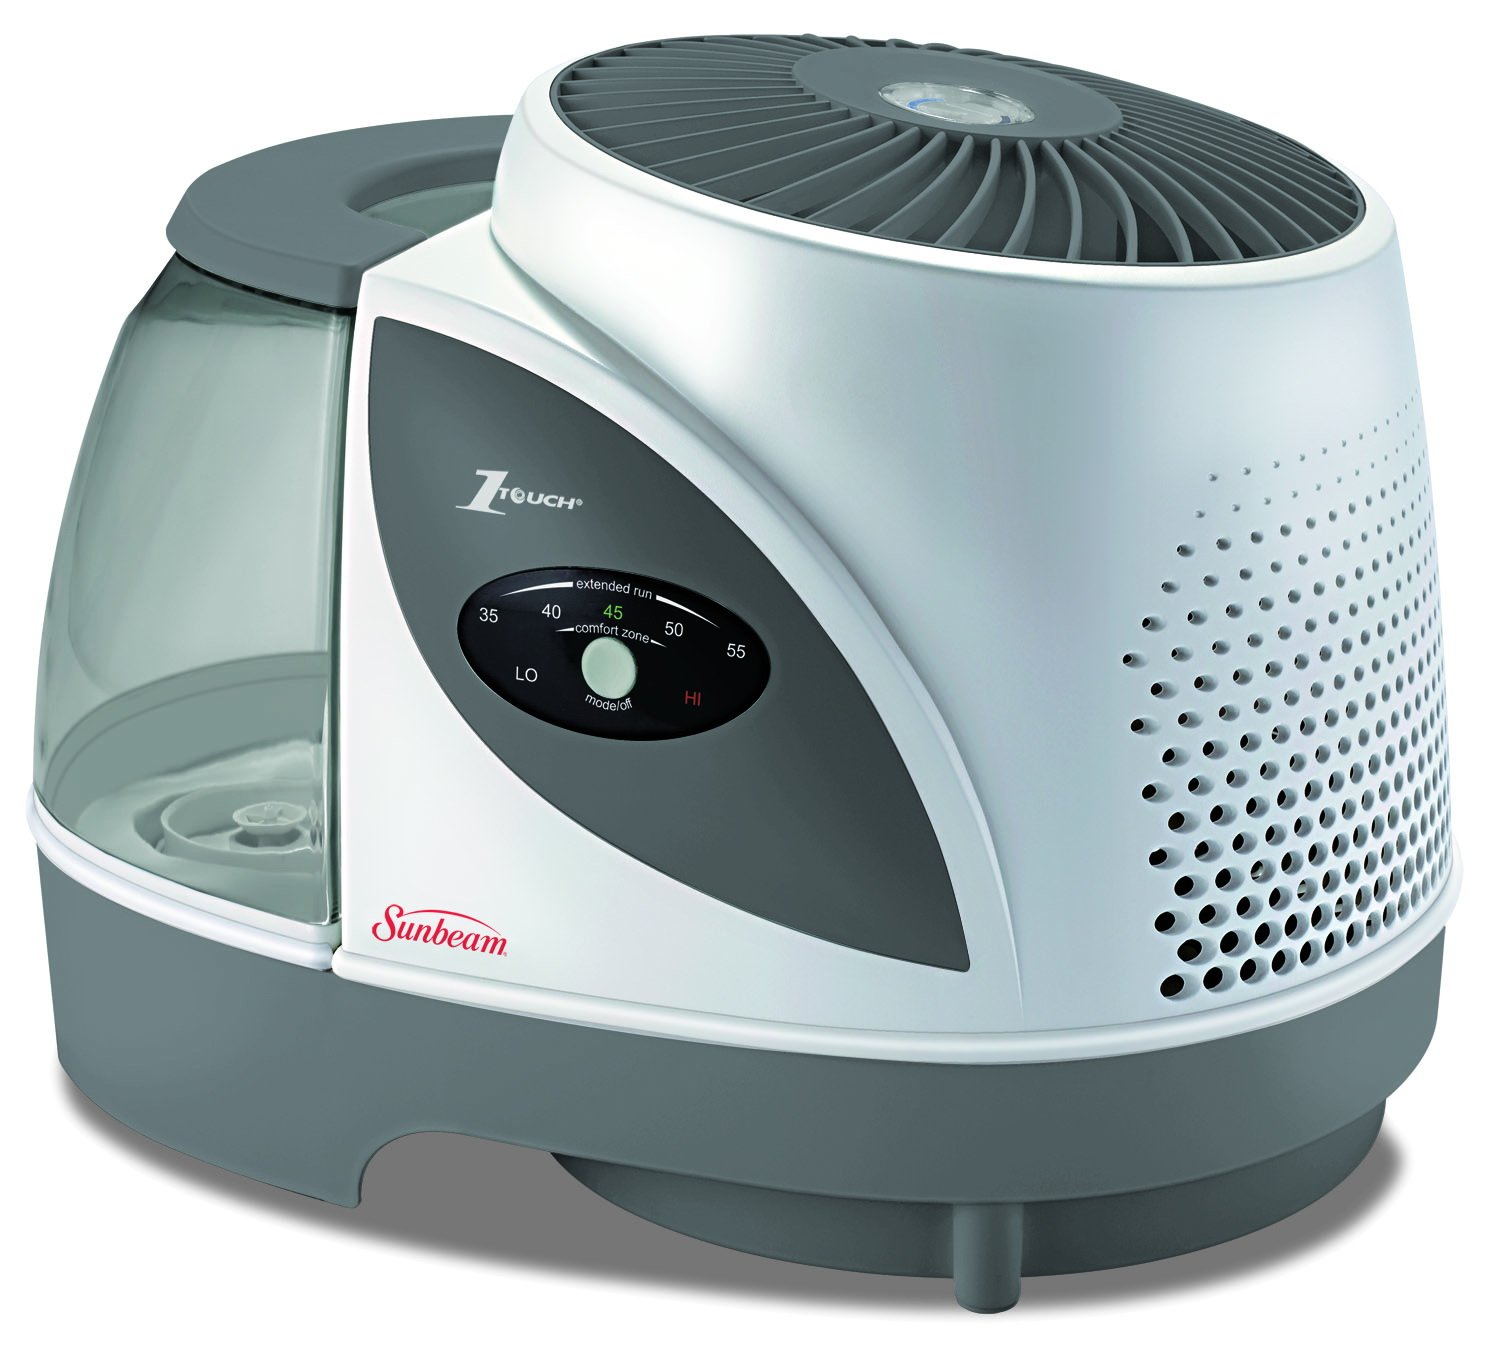 Sunbeam Cool Mist Humidifier: Amazon.ca: Home & Kitchen